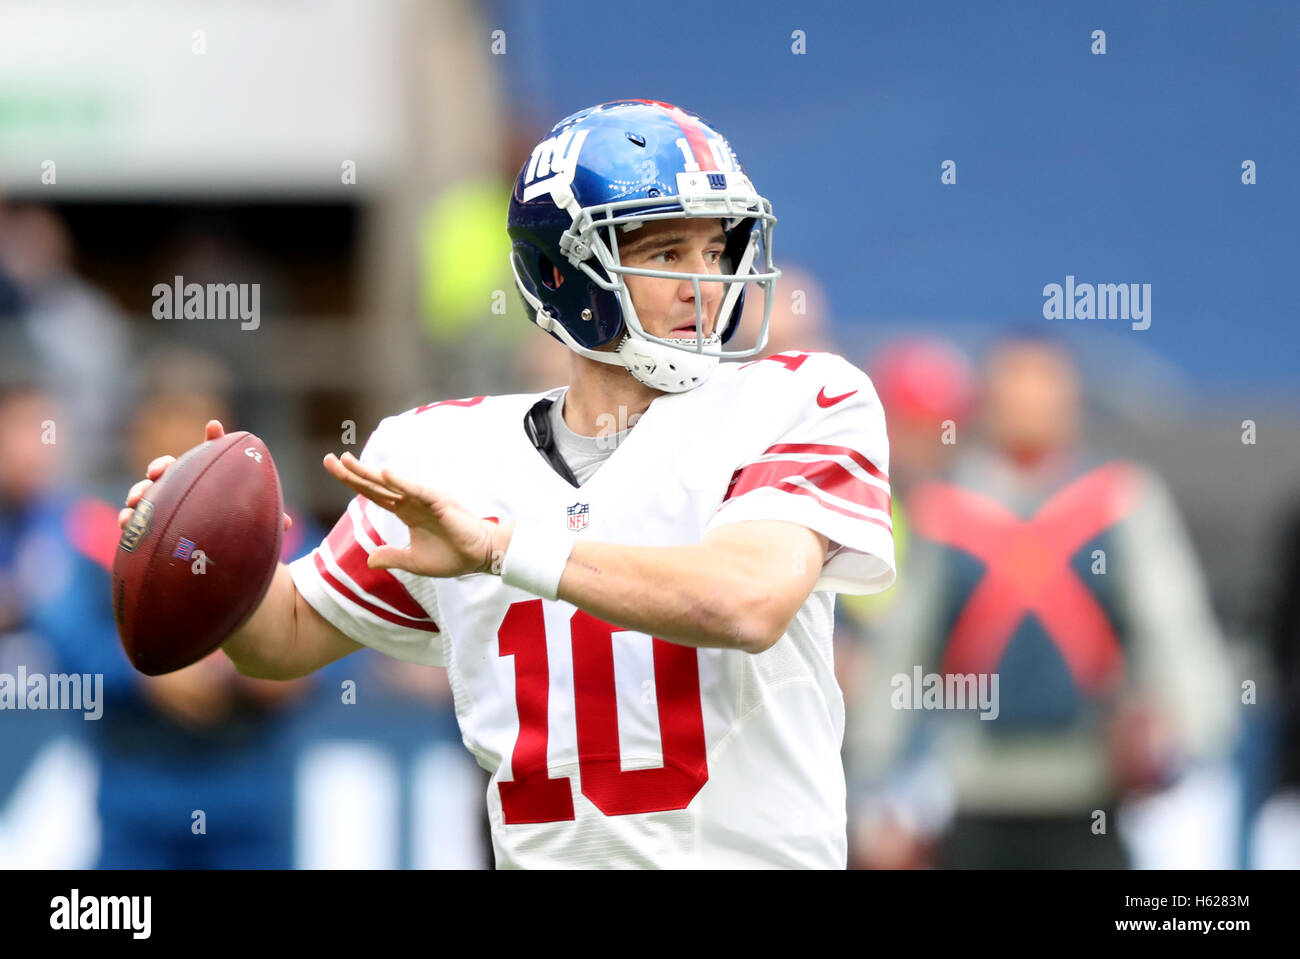 New York Giants' Eli Manning during the NFL International Series match at Twickenham, London. Stock Foto